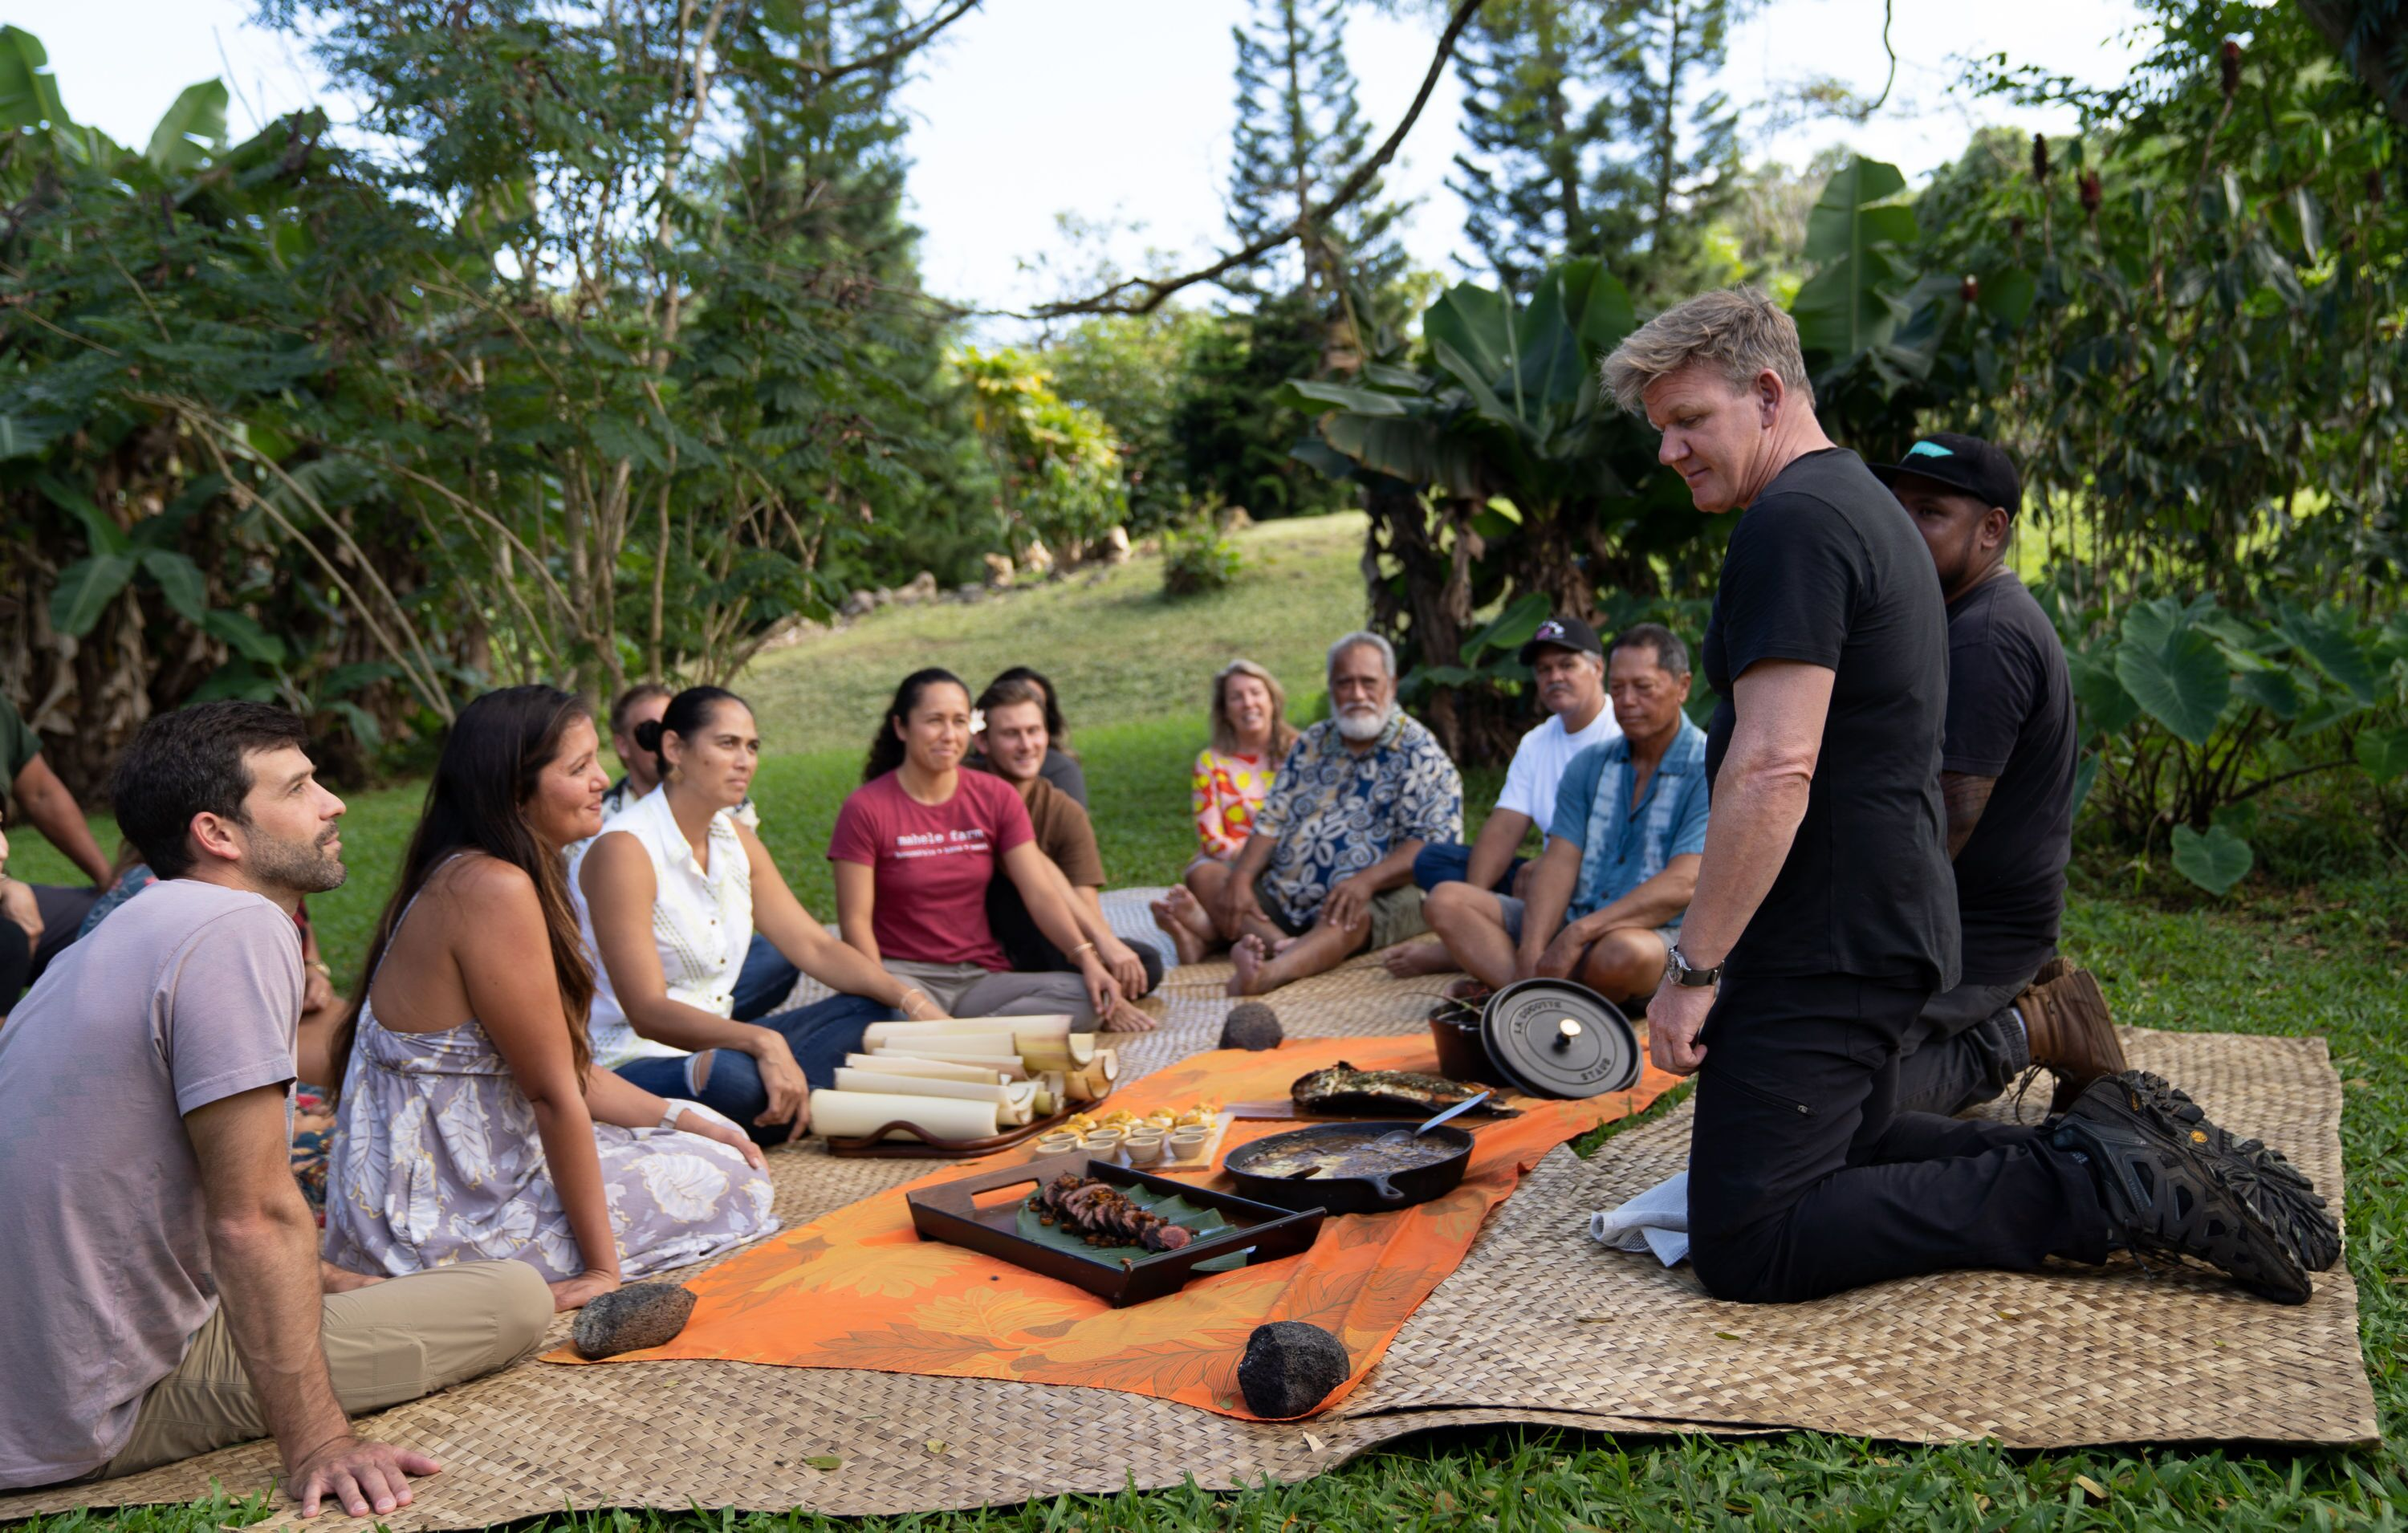 Gordon Ramsay Uncharted: Hawaii's ingredients offer culinary inspiration